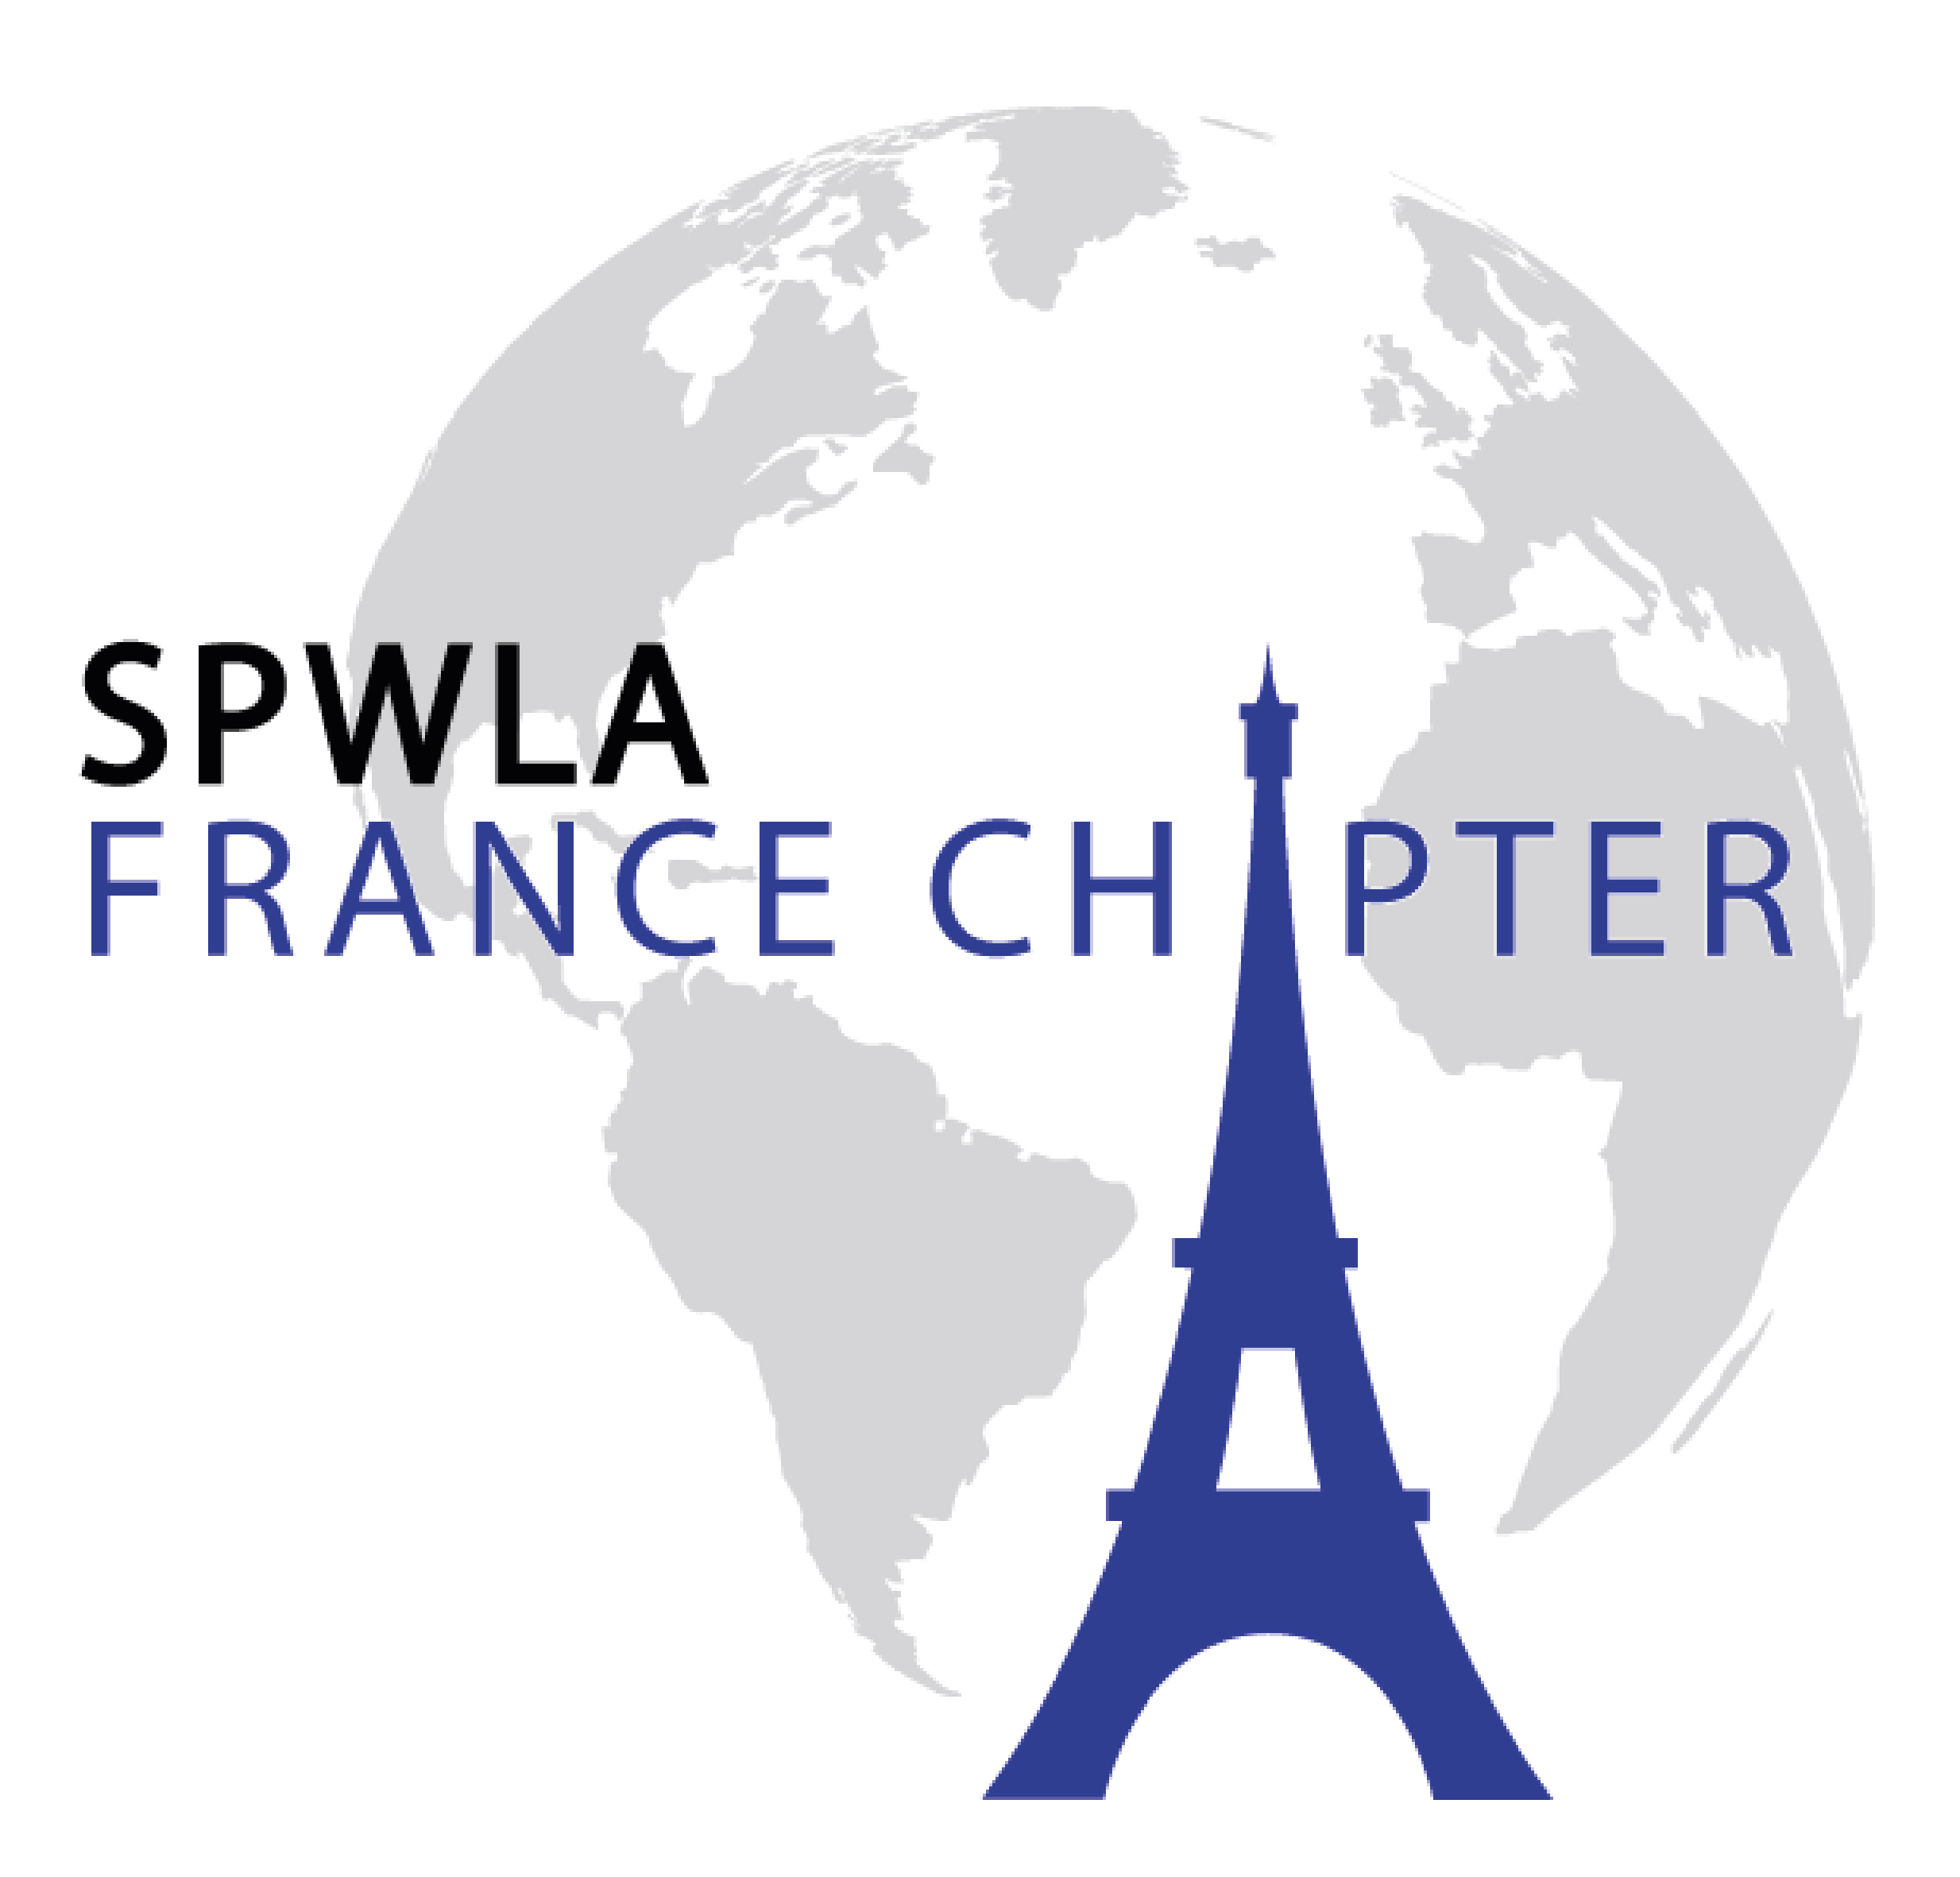 Réunion Technique de la SPWLA France Chapter : Back to basics : Delineating the Geothermal Structure and Flow Properties in a Sub-Horizontal Well with the Use of Wireline and LWD Data in a Multiphysic